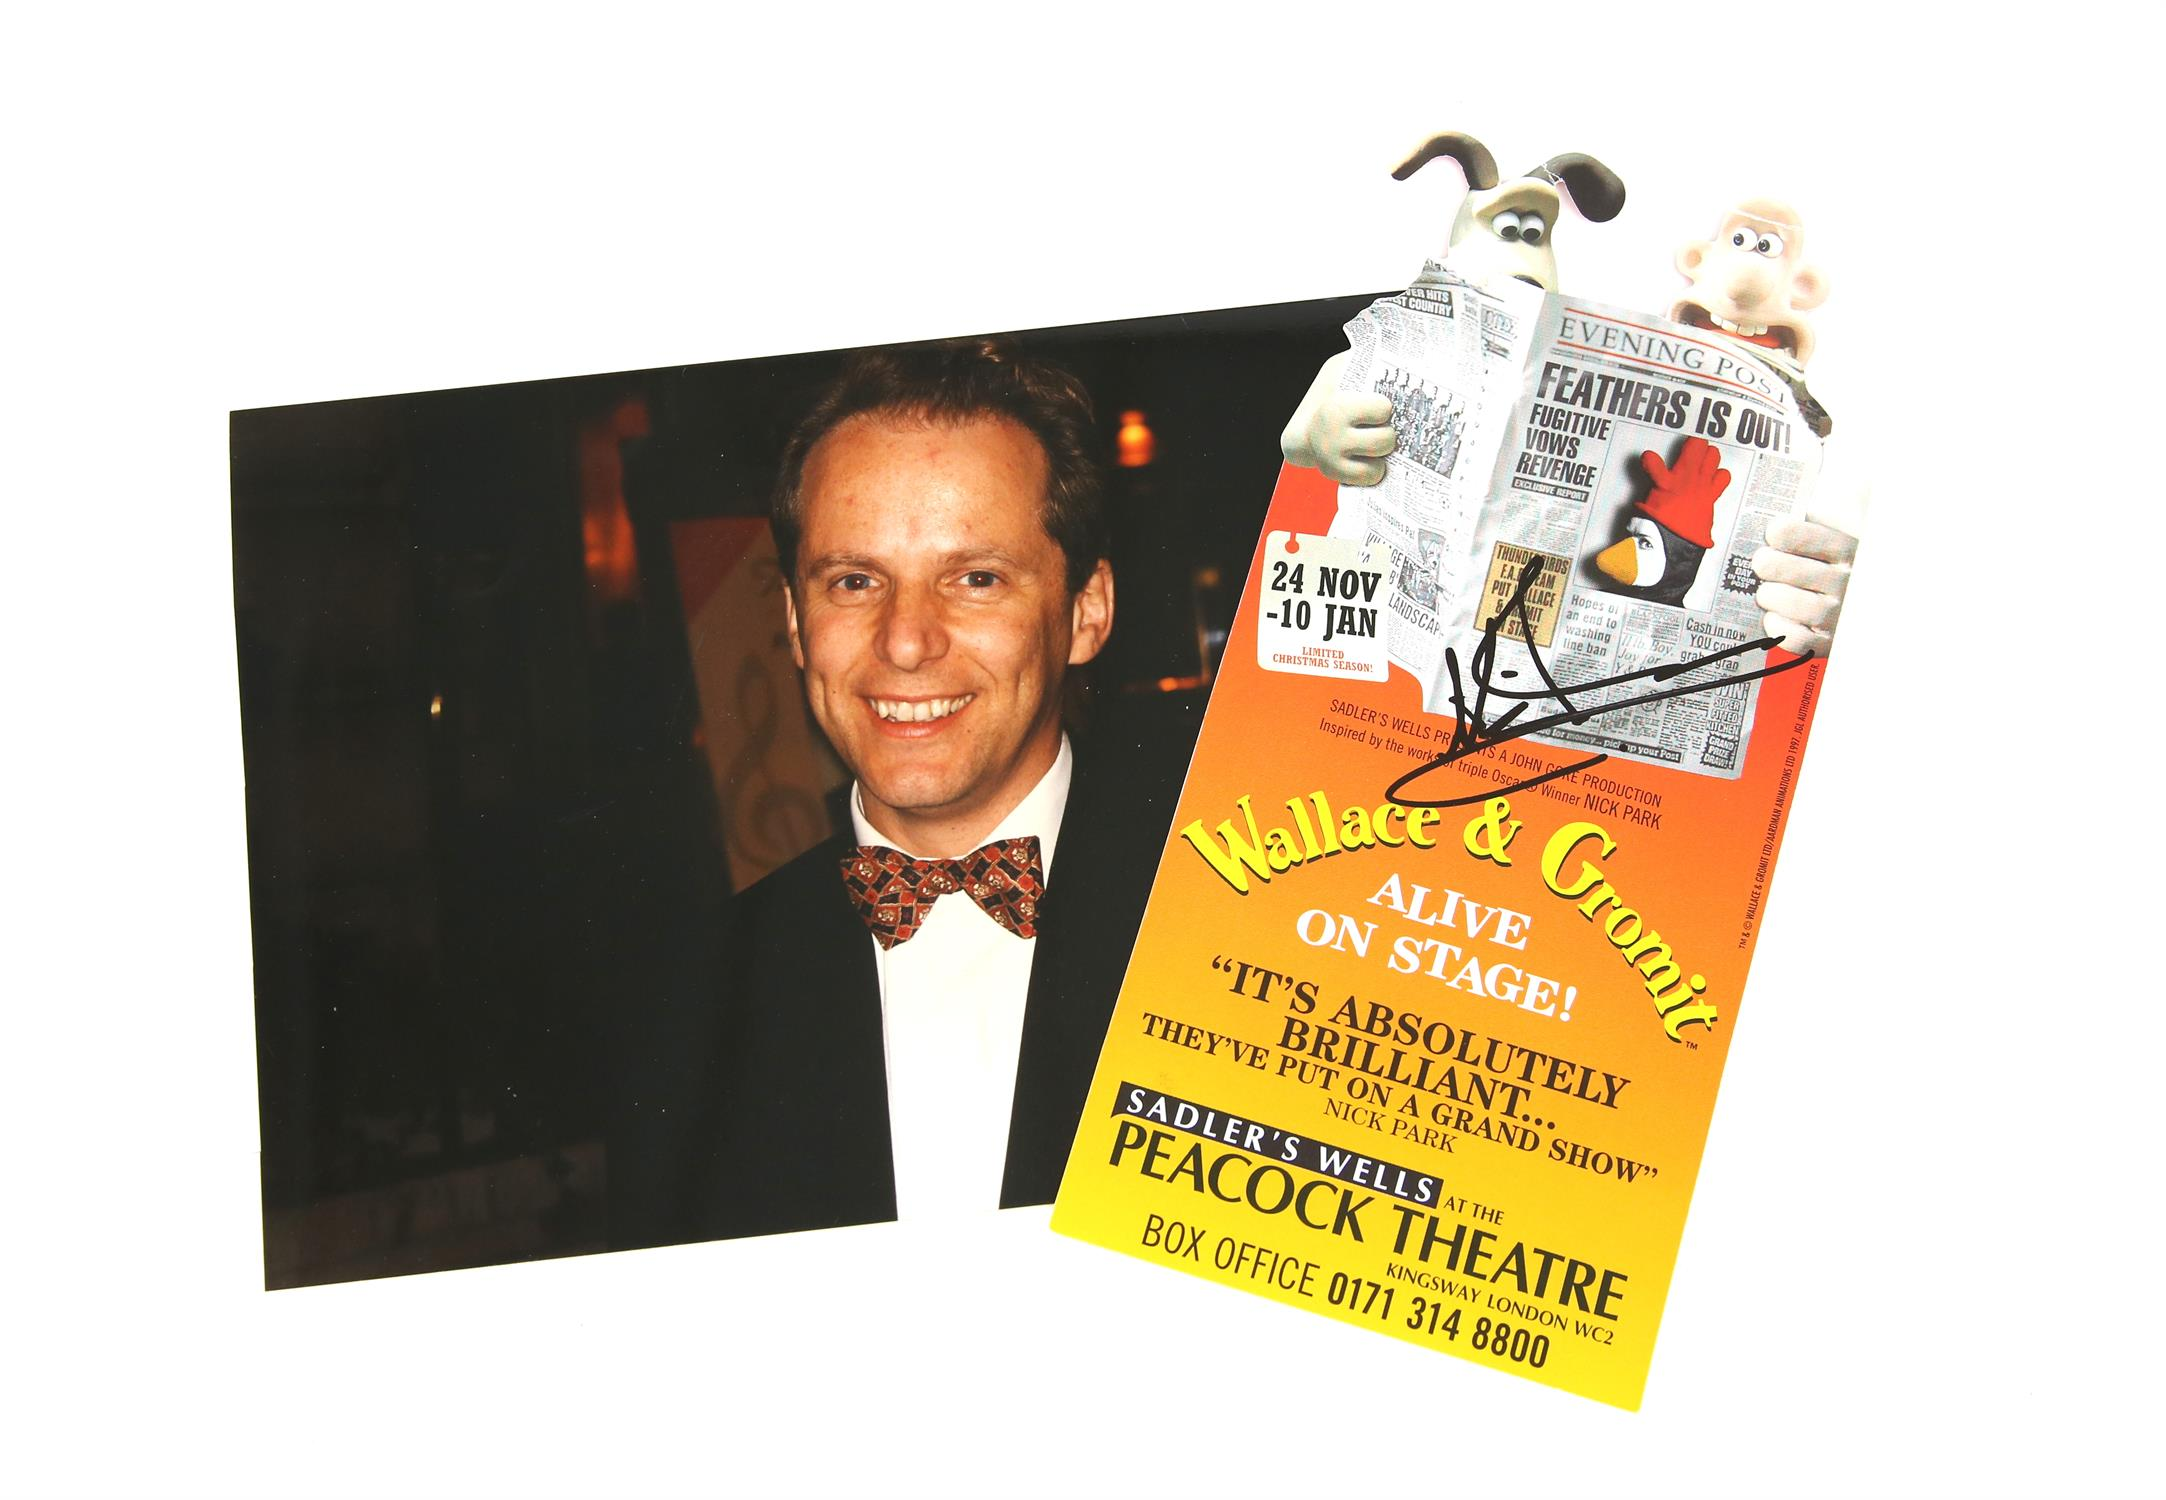 Nick Park - Aardman Animations 'Wallace & Gromit Alive On Stage!' - autographed leaflet for the - Image 3 of 3